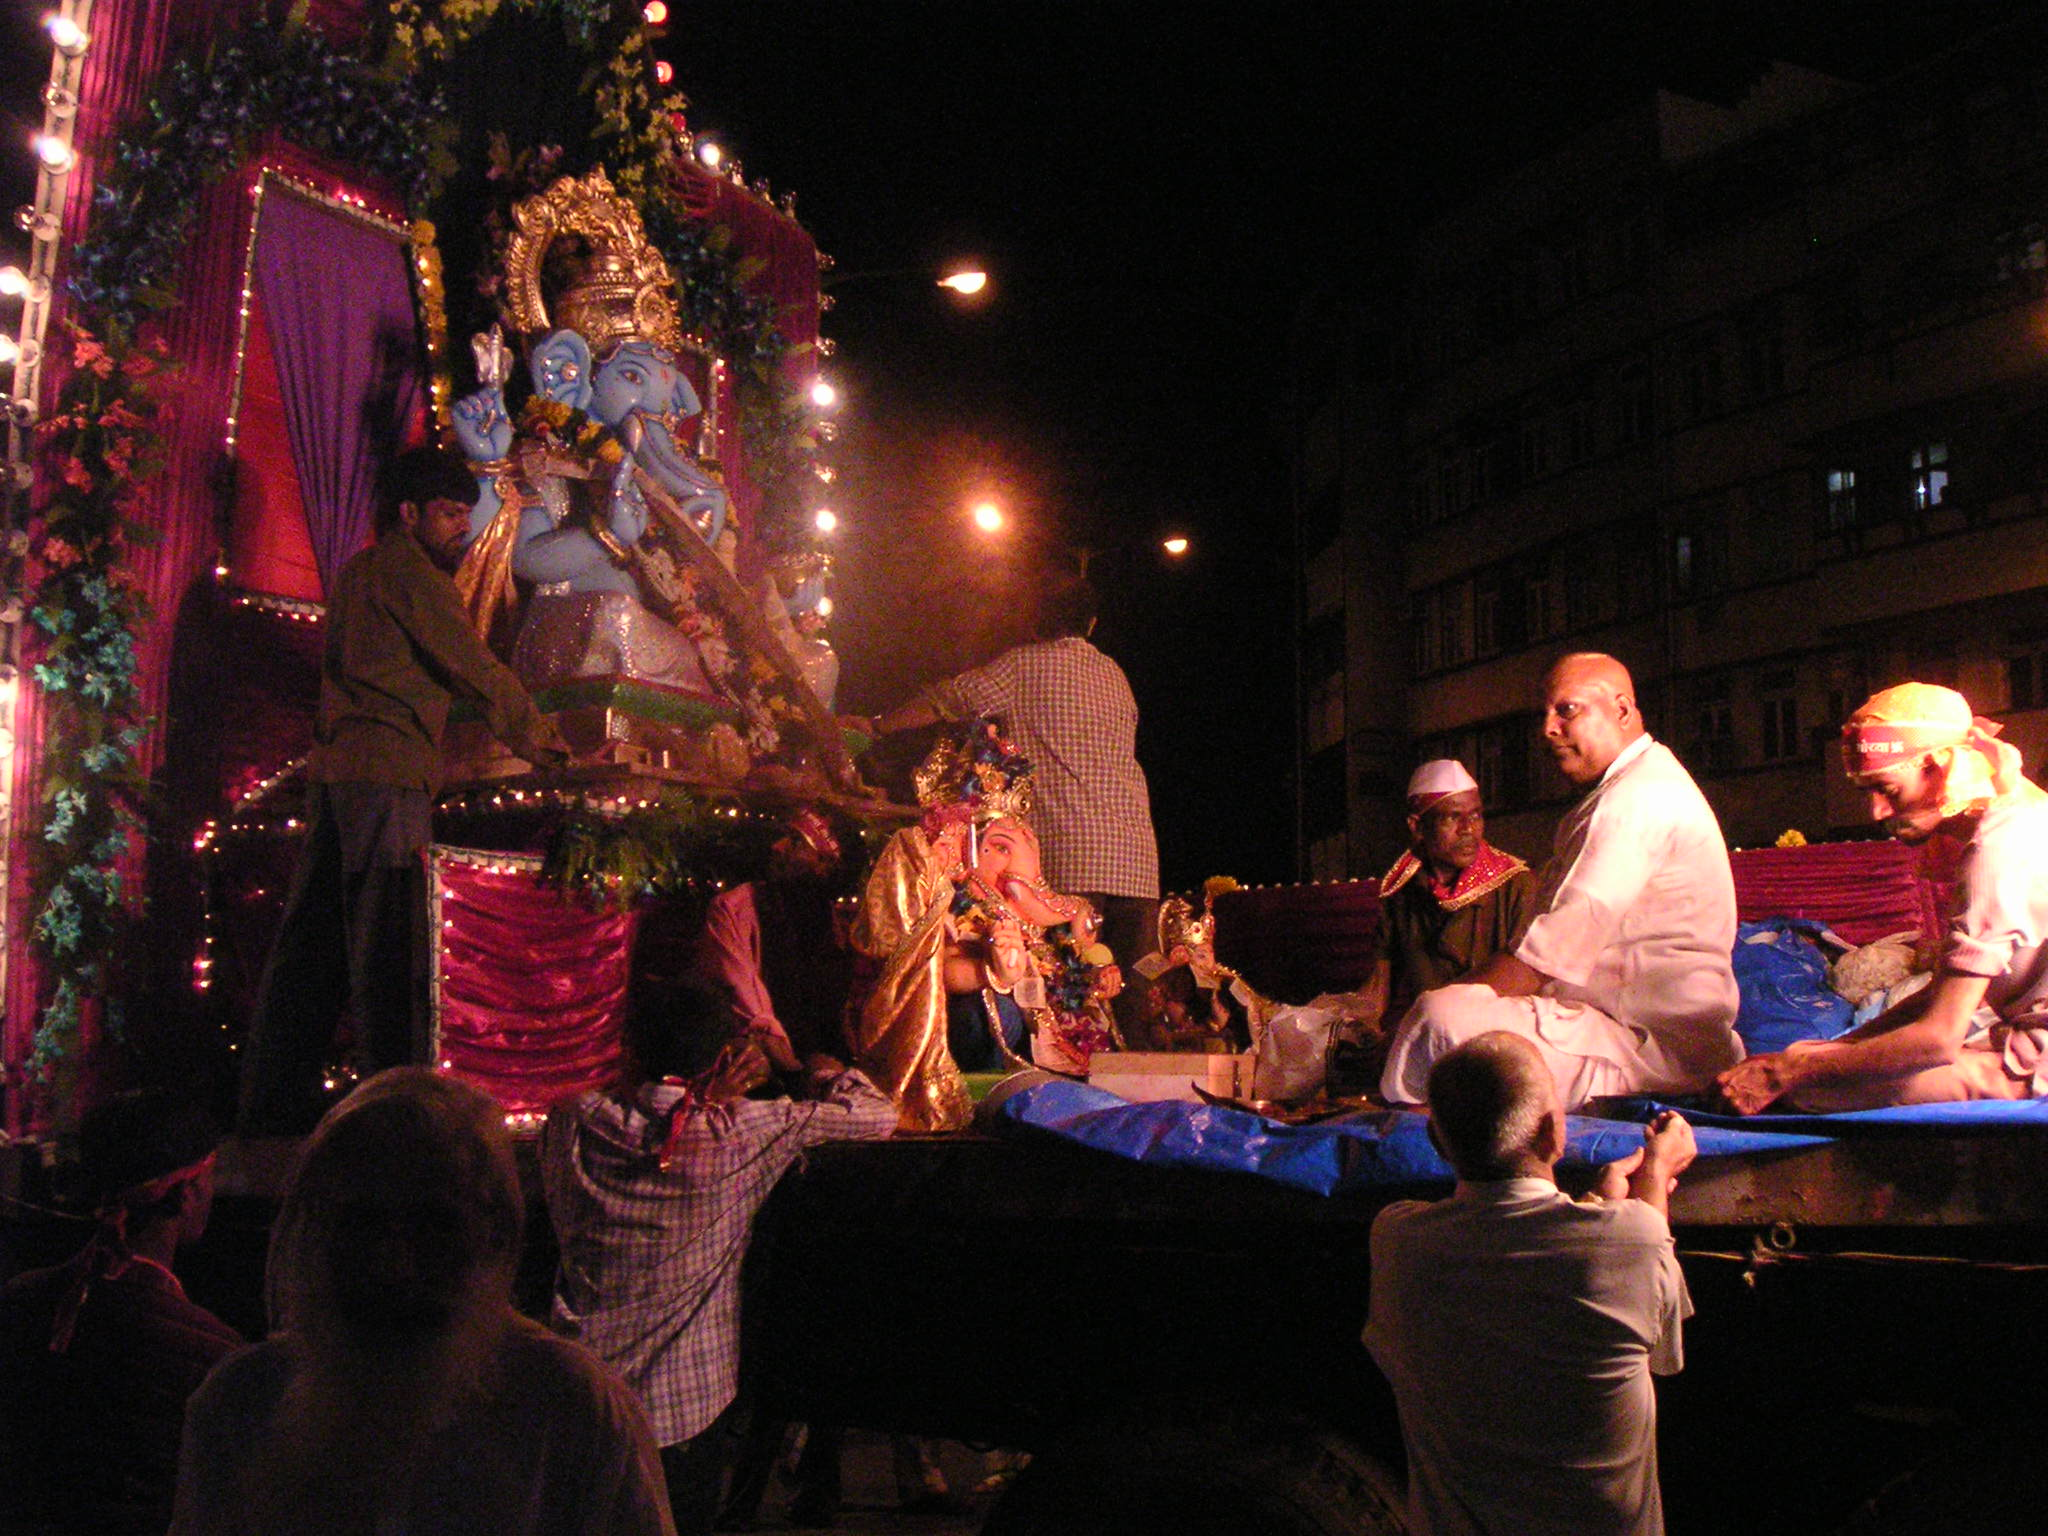 http://blogs.bootsnall.com/miss/archives/Ganpati%20Visarjan%202005%20041.jpg